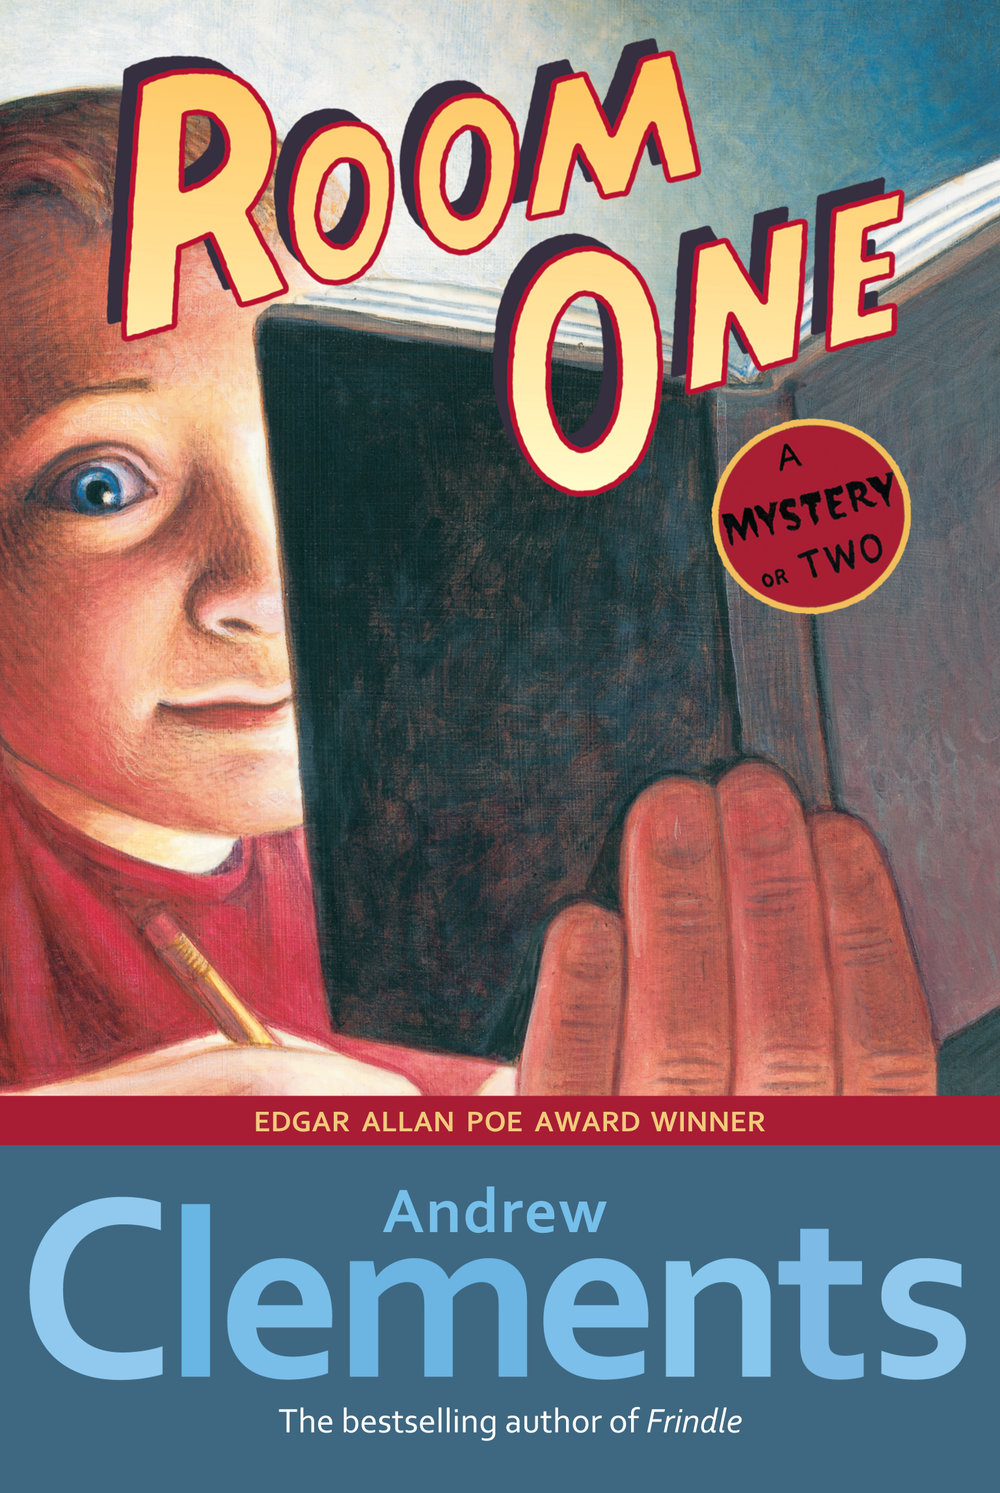 andrew-clements-room-one.jpg